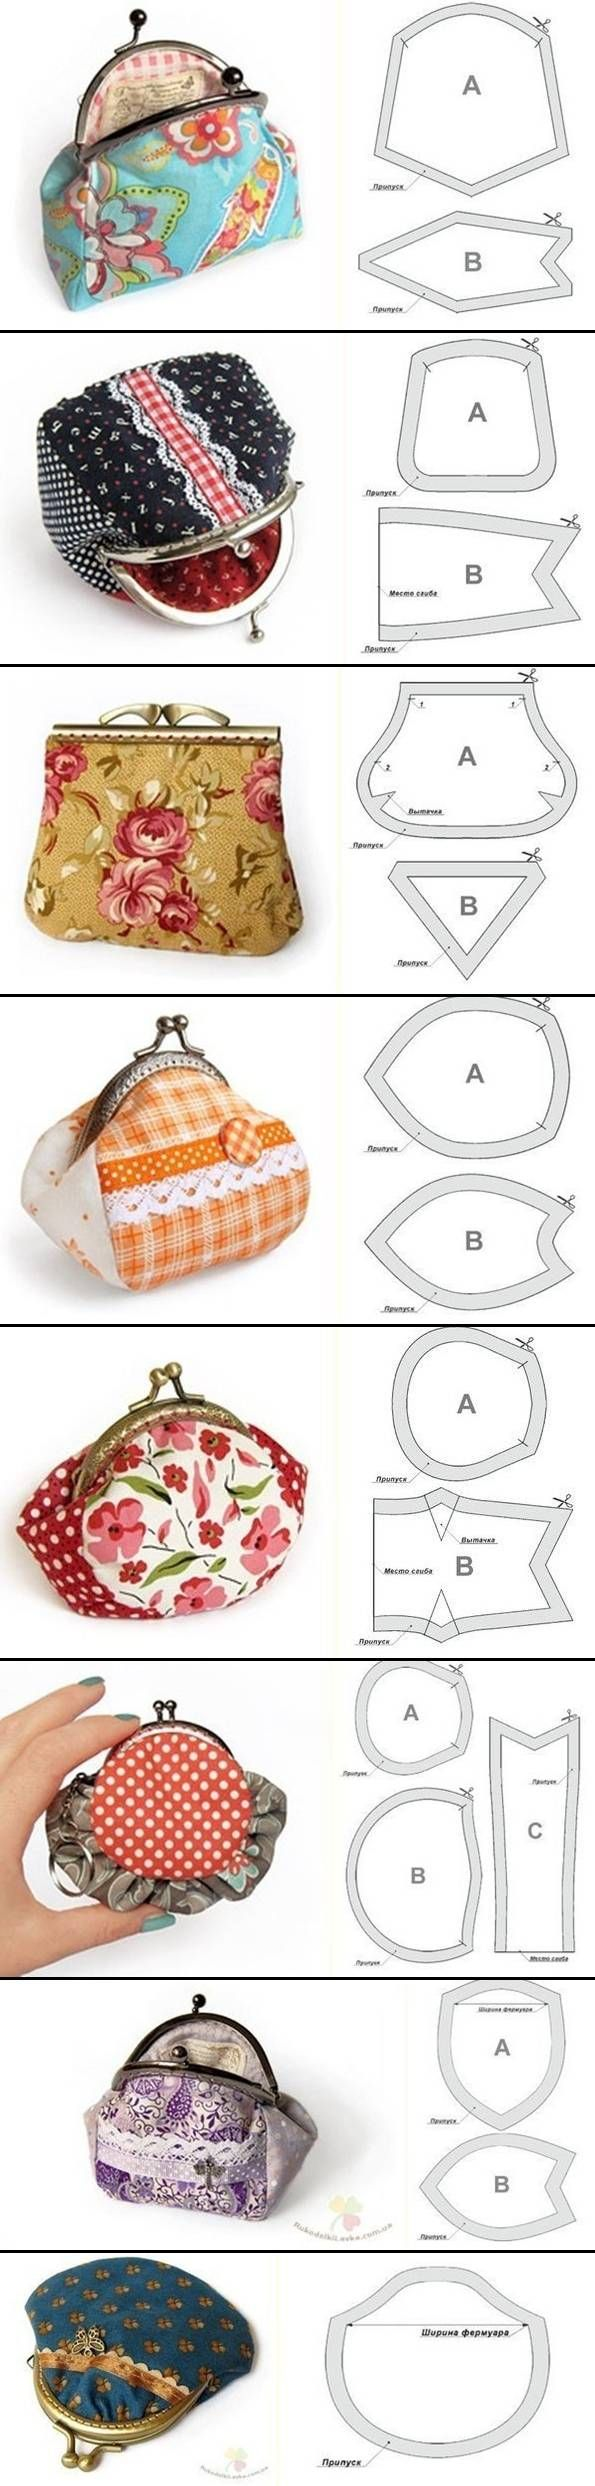 Free Coin Purse PDF Templates